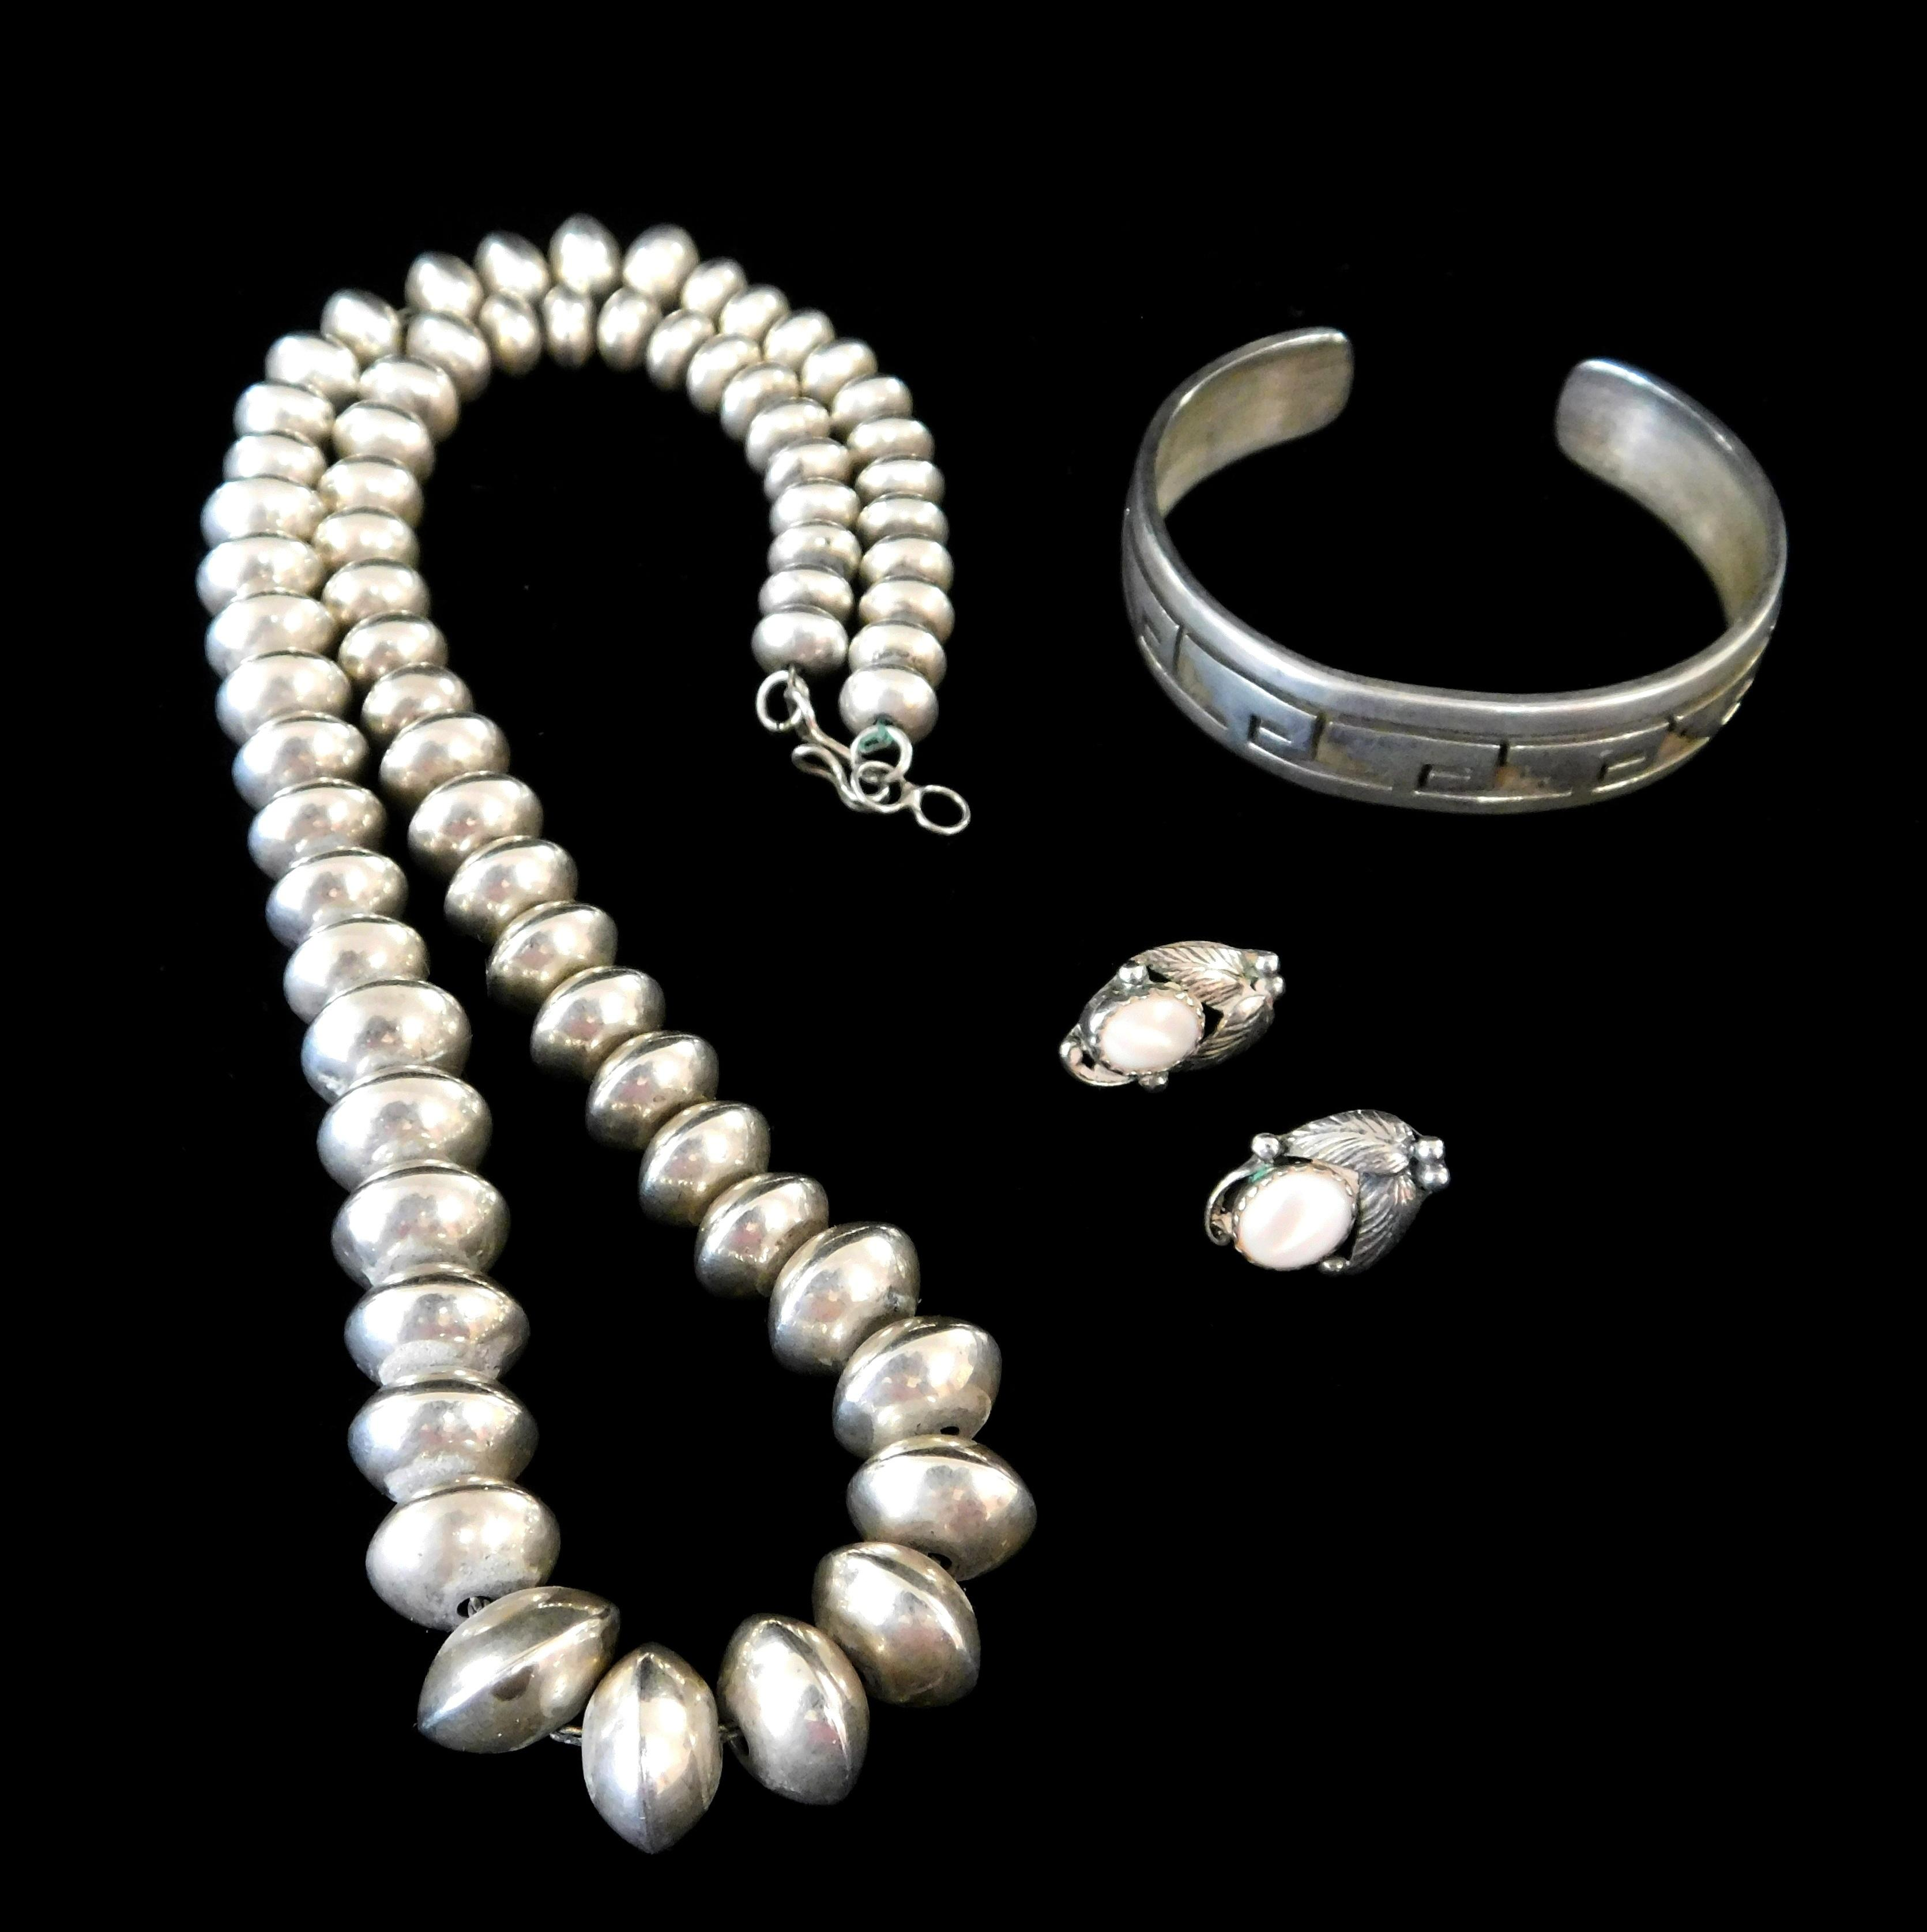 Native American silver jewelry, three pieces, cuff, earrings and beaded necklace, details include: Hopi cuff with incised step desig...